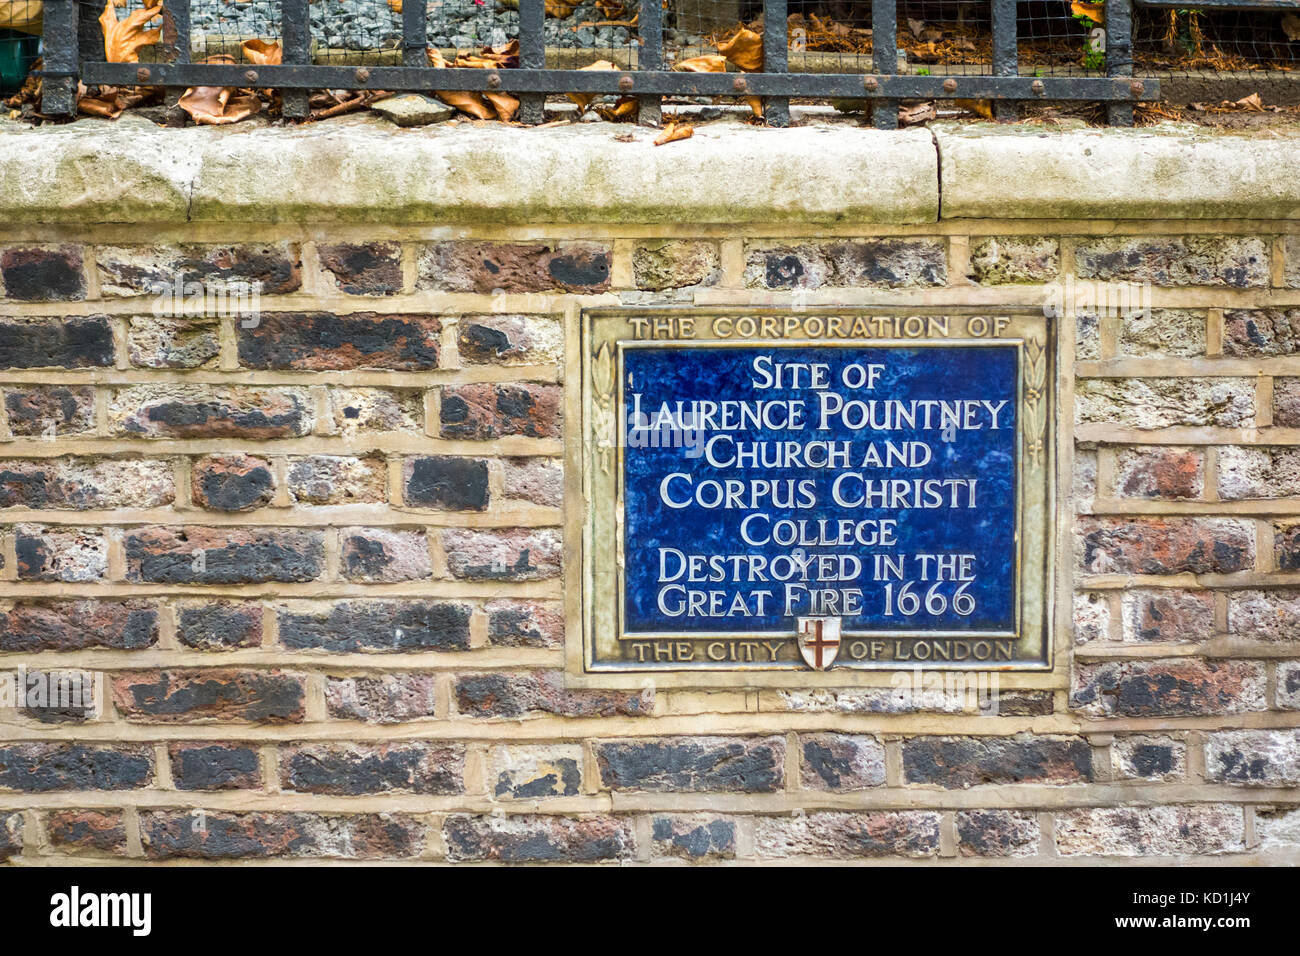 Blue plaque showing site of Laurence Pountney Church and Corpus Christi College, City of London - Stock Image